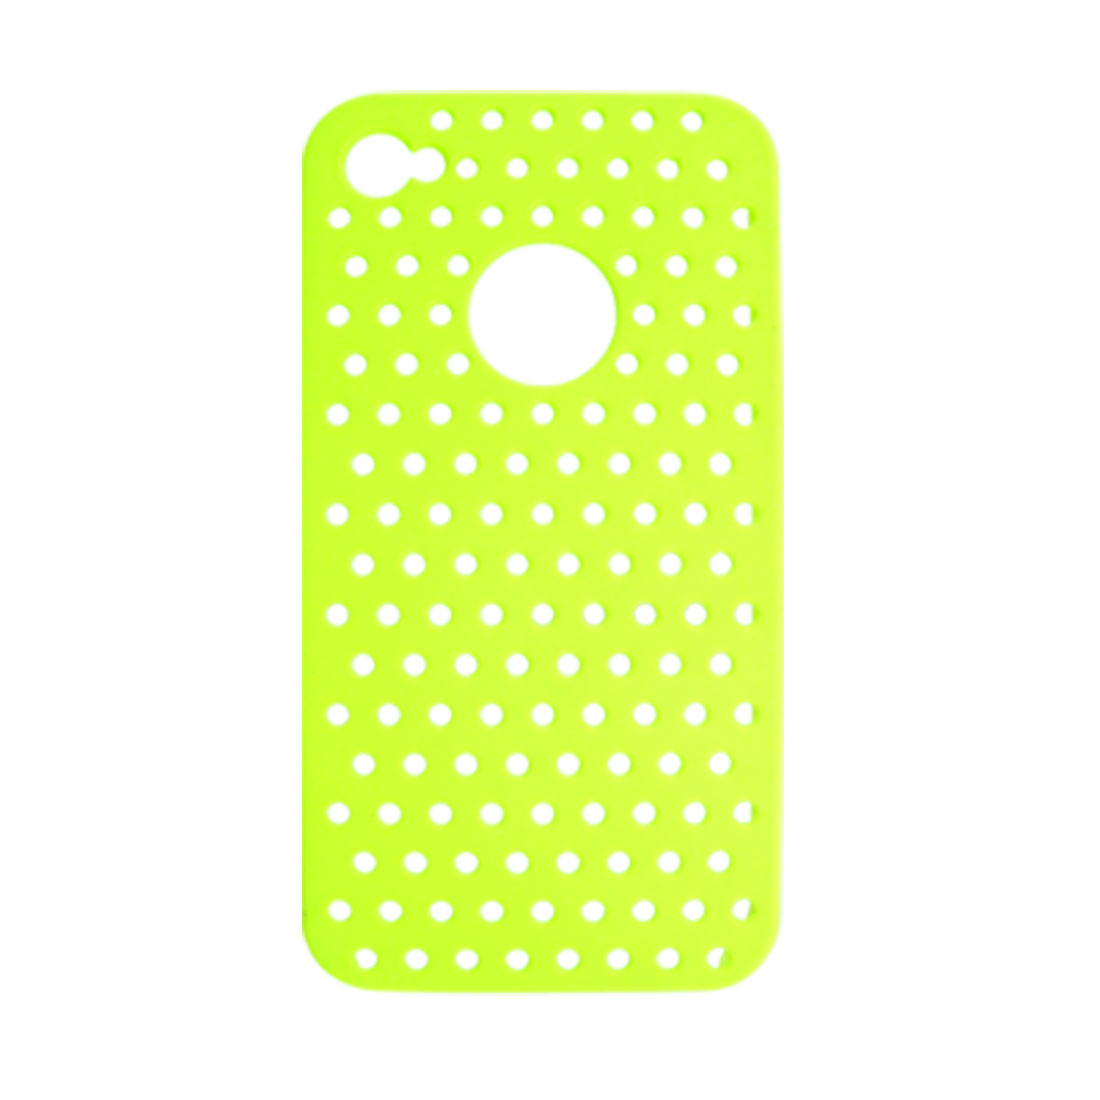 Green Yellow Rubberized Plastic Mesh Back Protector for iPhone 4 4G